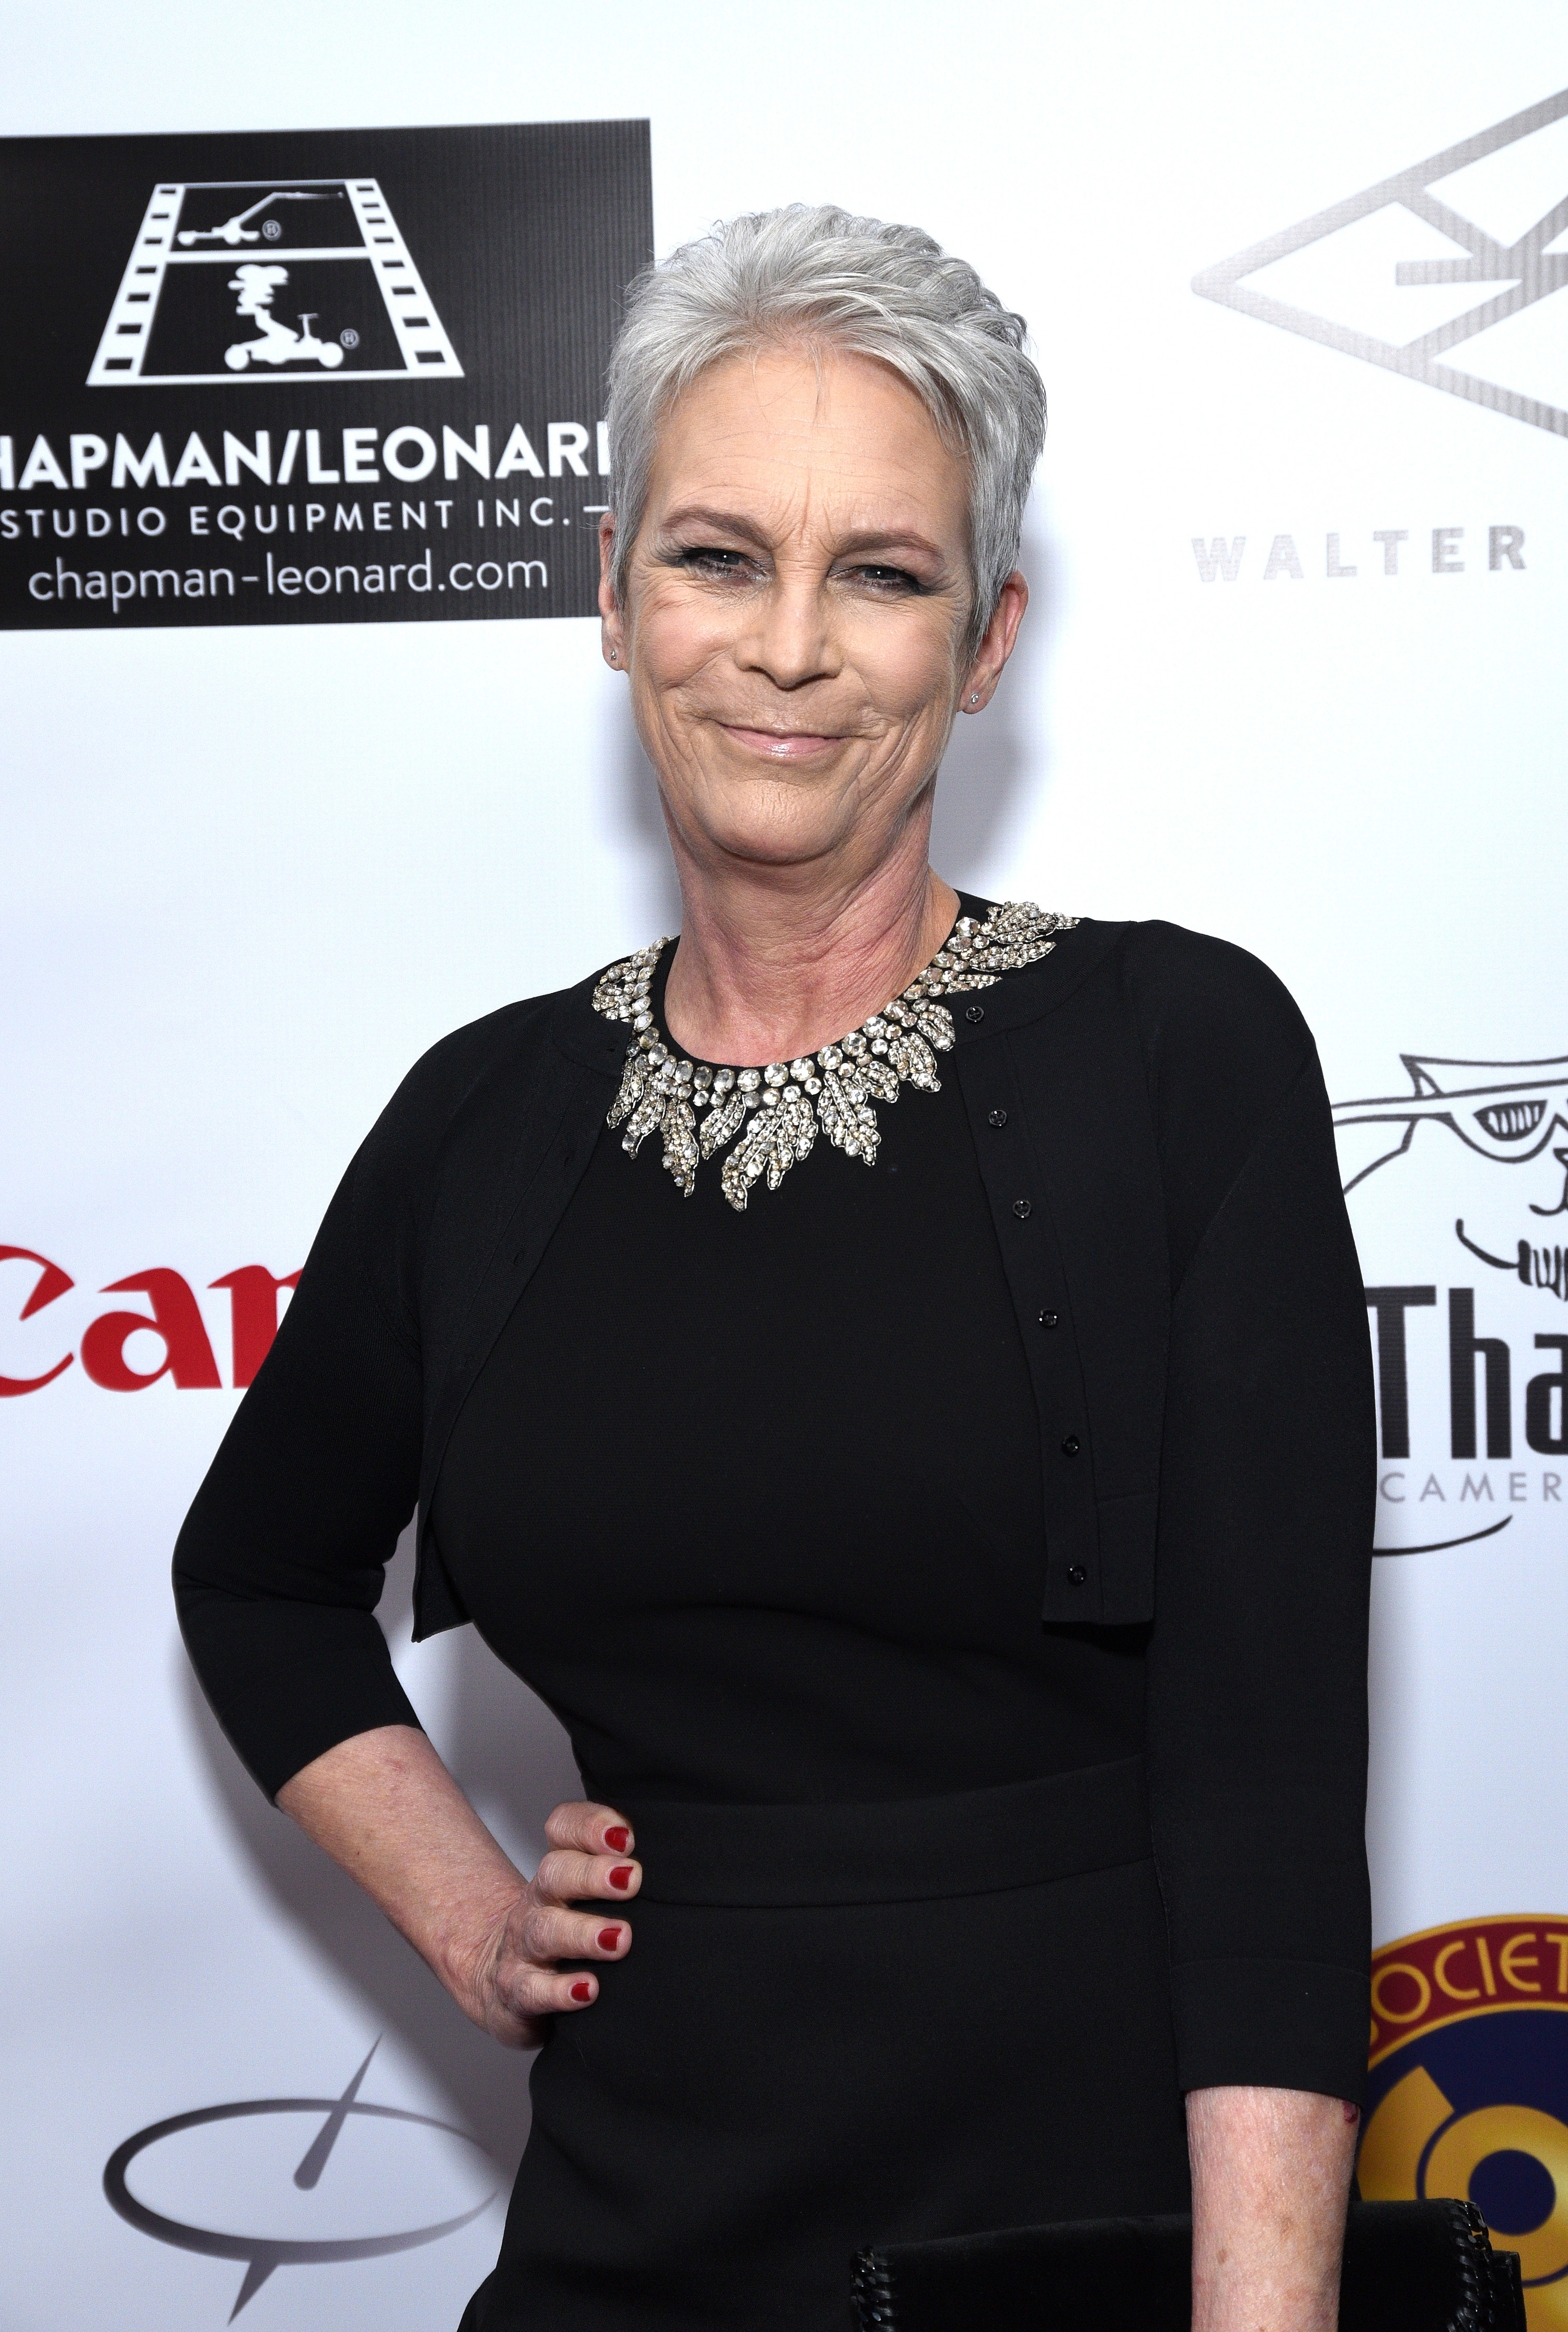 Smiling with gray hair and hands on hips on the red carpet